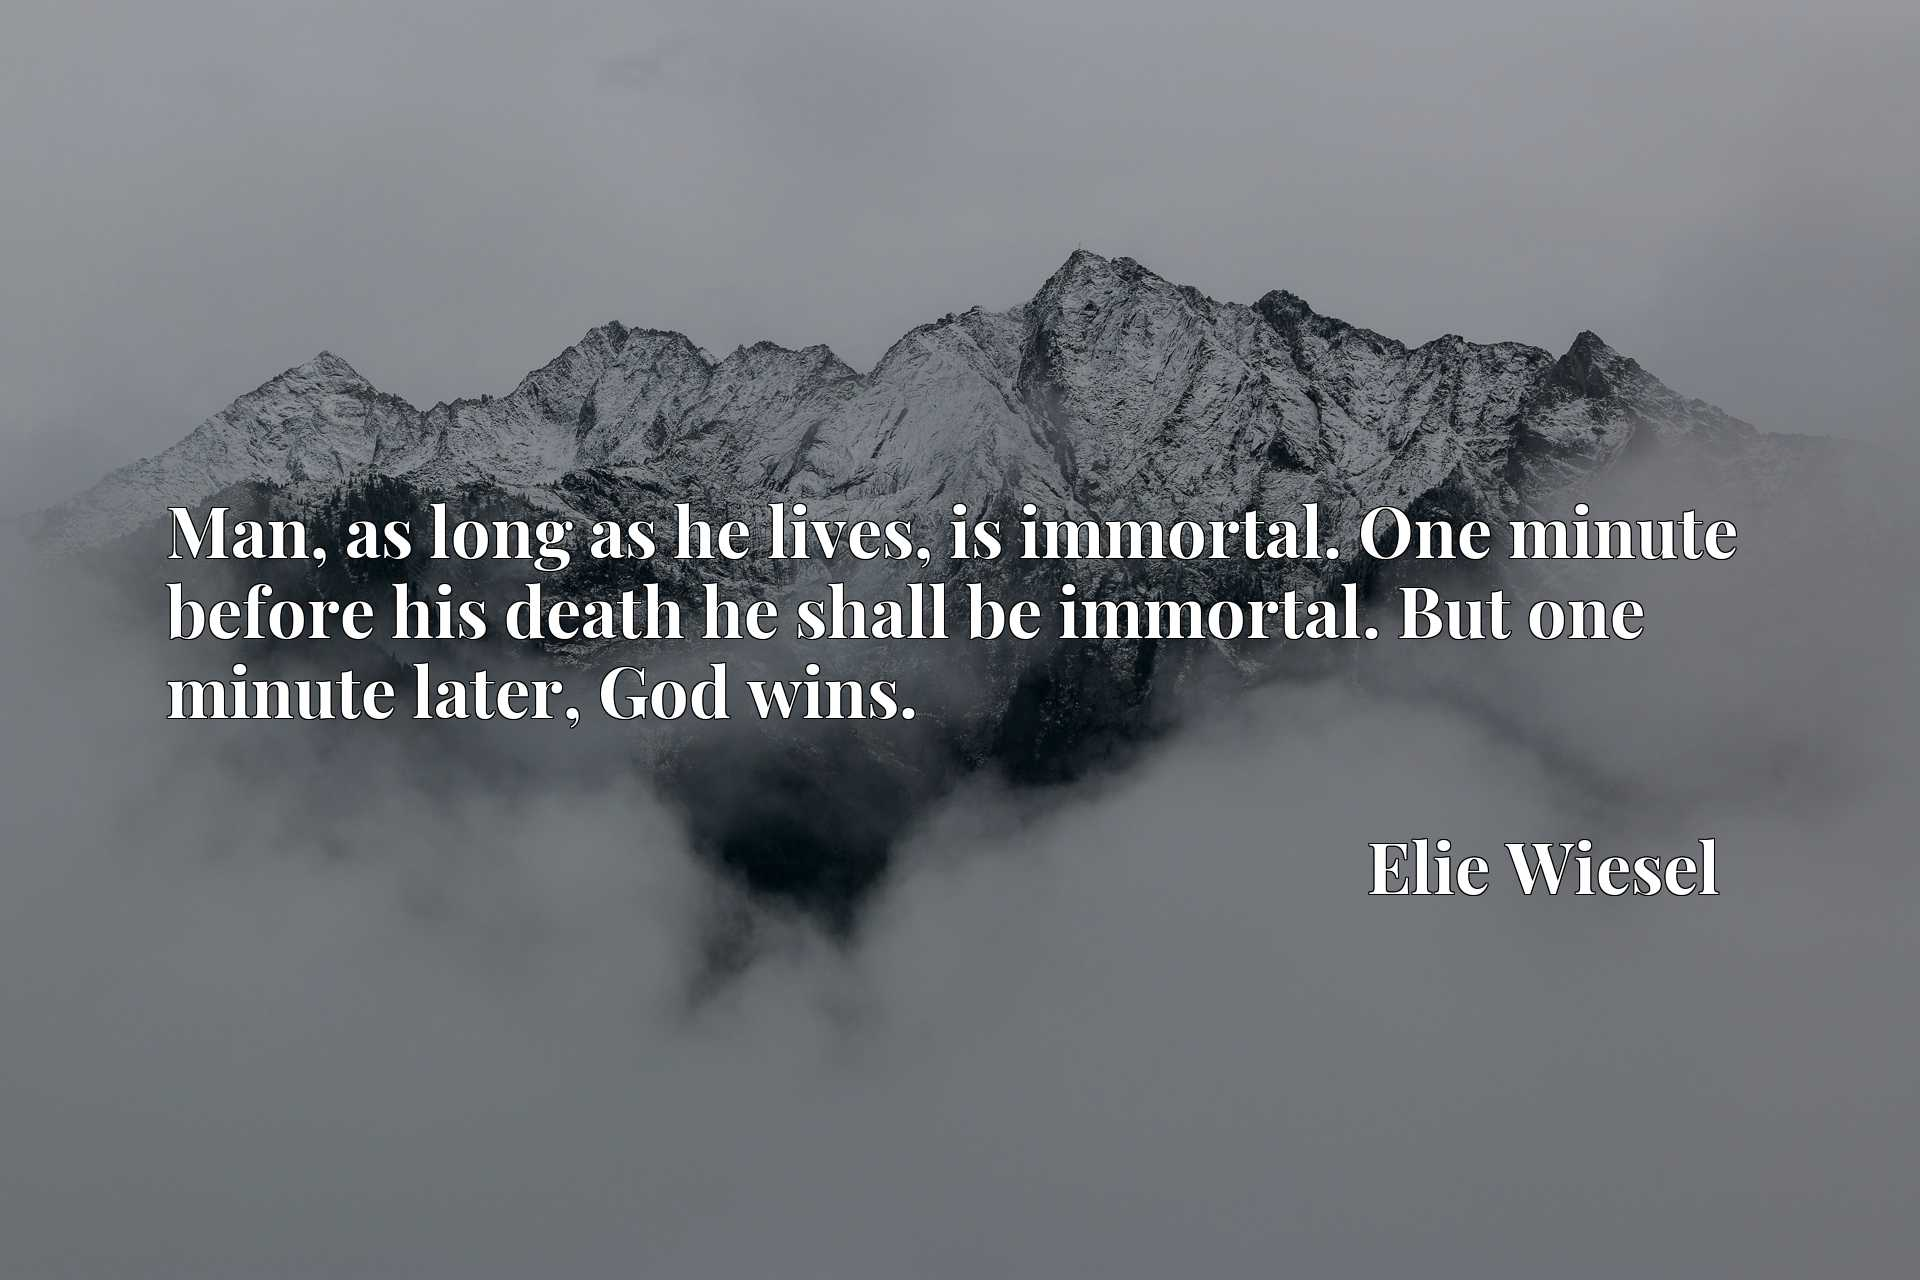 Man, as long as he lives, is immortal. One minute before his death he shall be immortal. But one minute later, God wins.